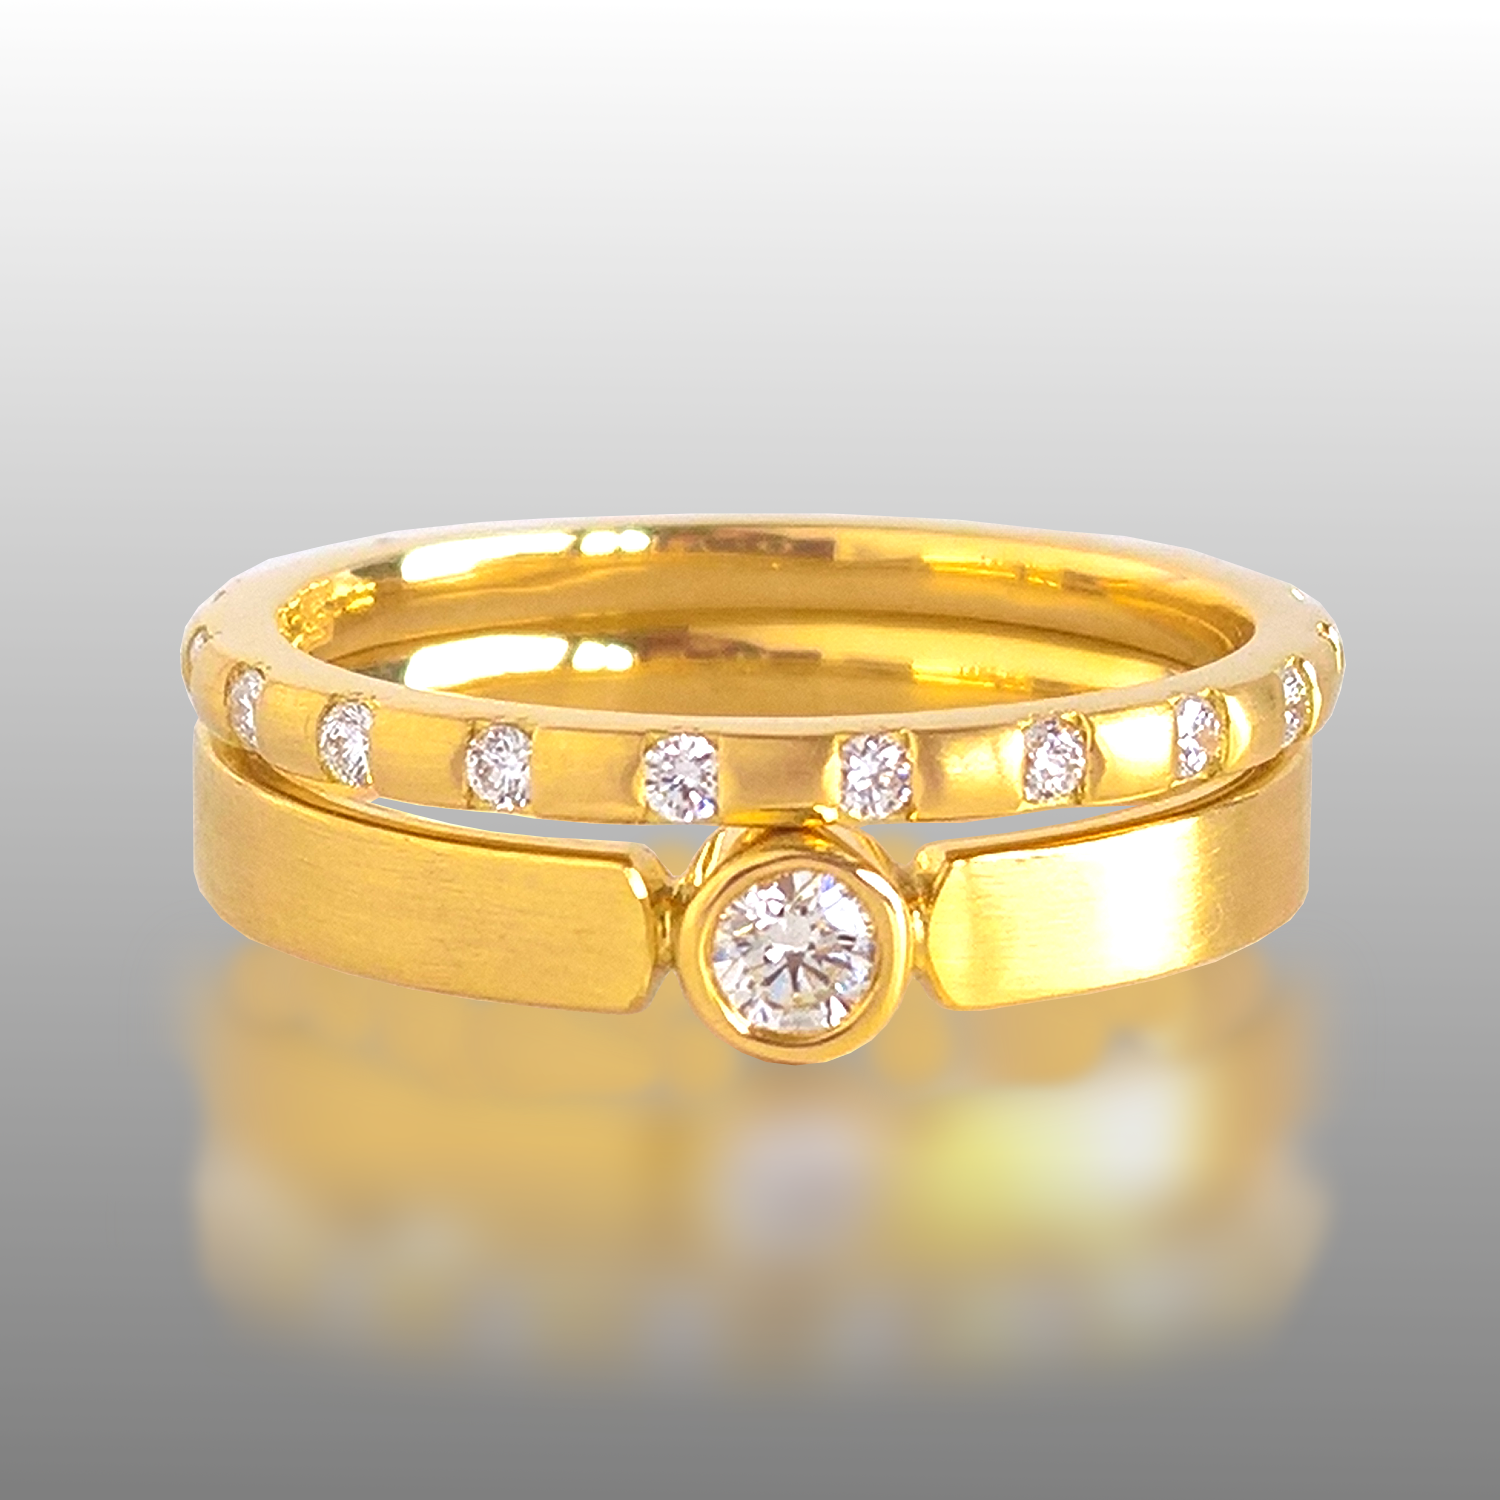 Wedding Set - Diamond Eternity Band 'Momenti' and Diamond Solitaire Band 'Timeless' by Pratima Design Fine Art Jewelry